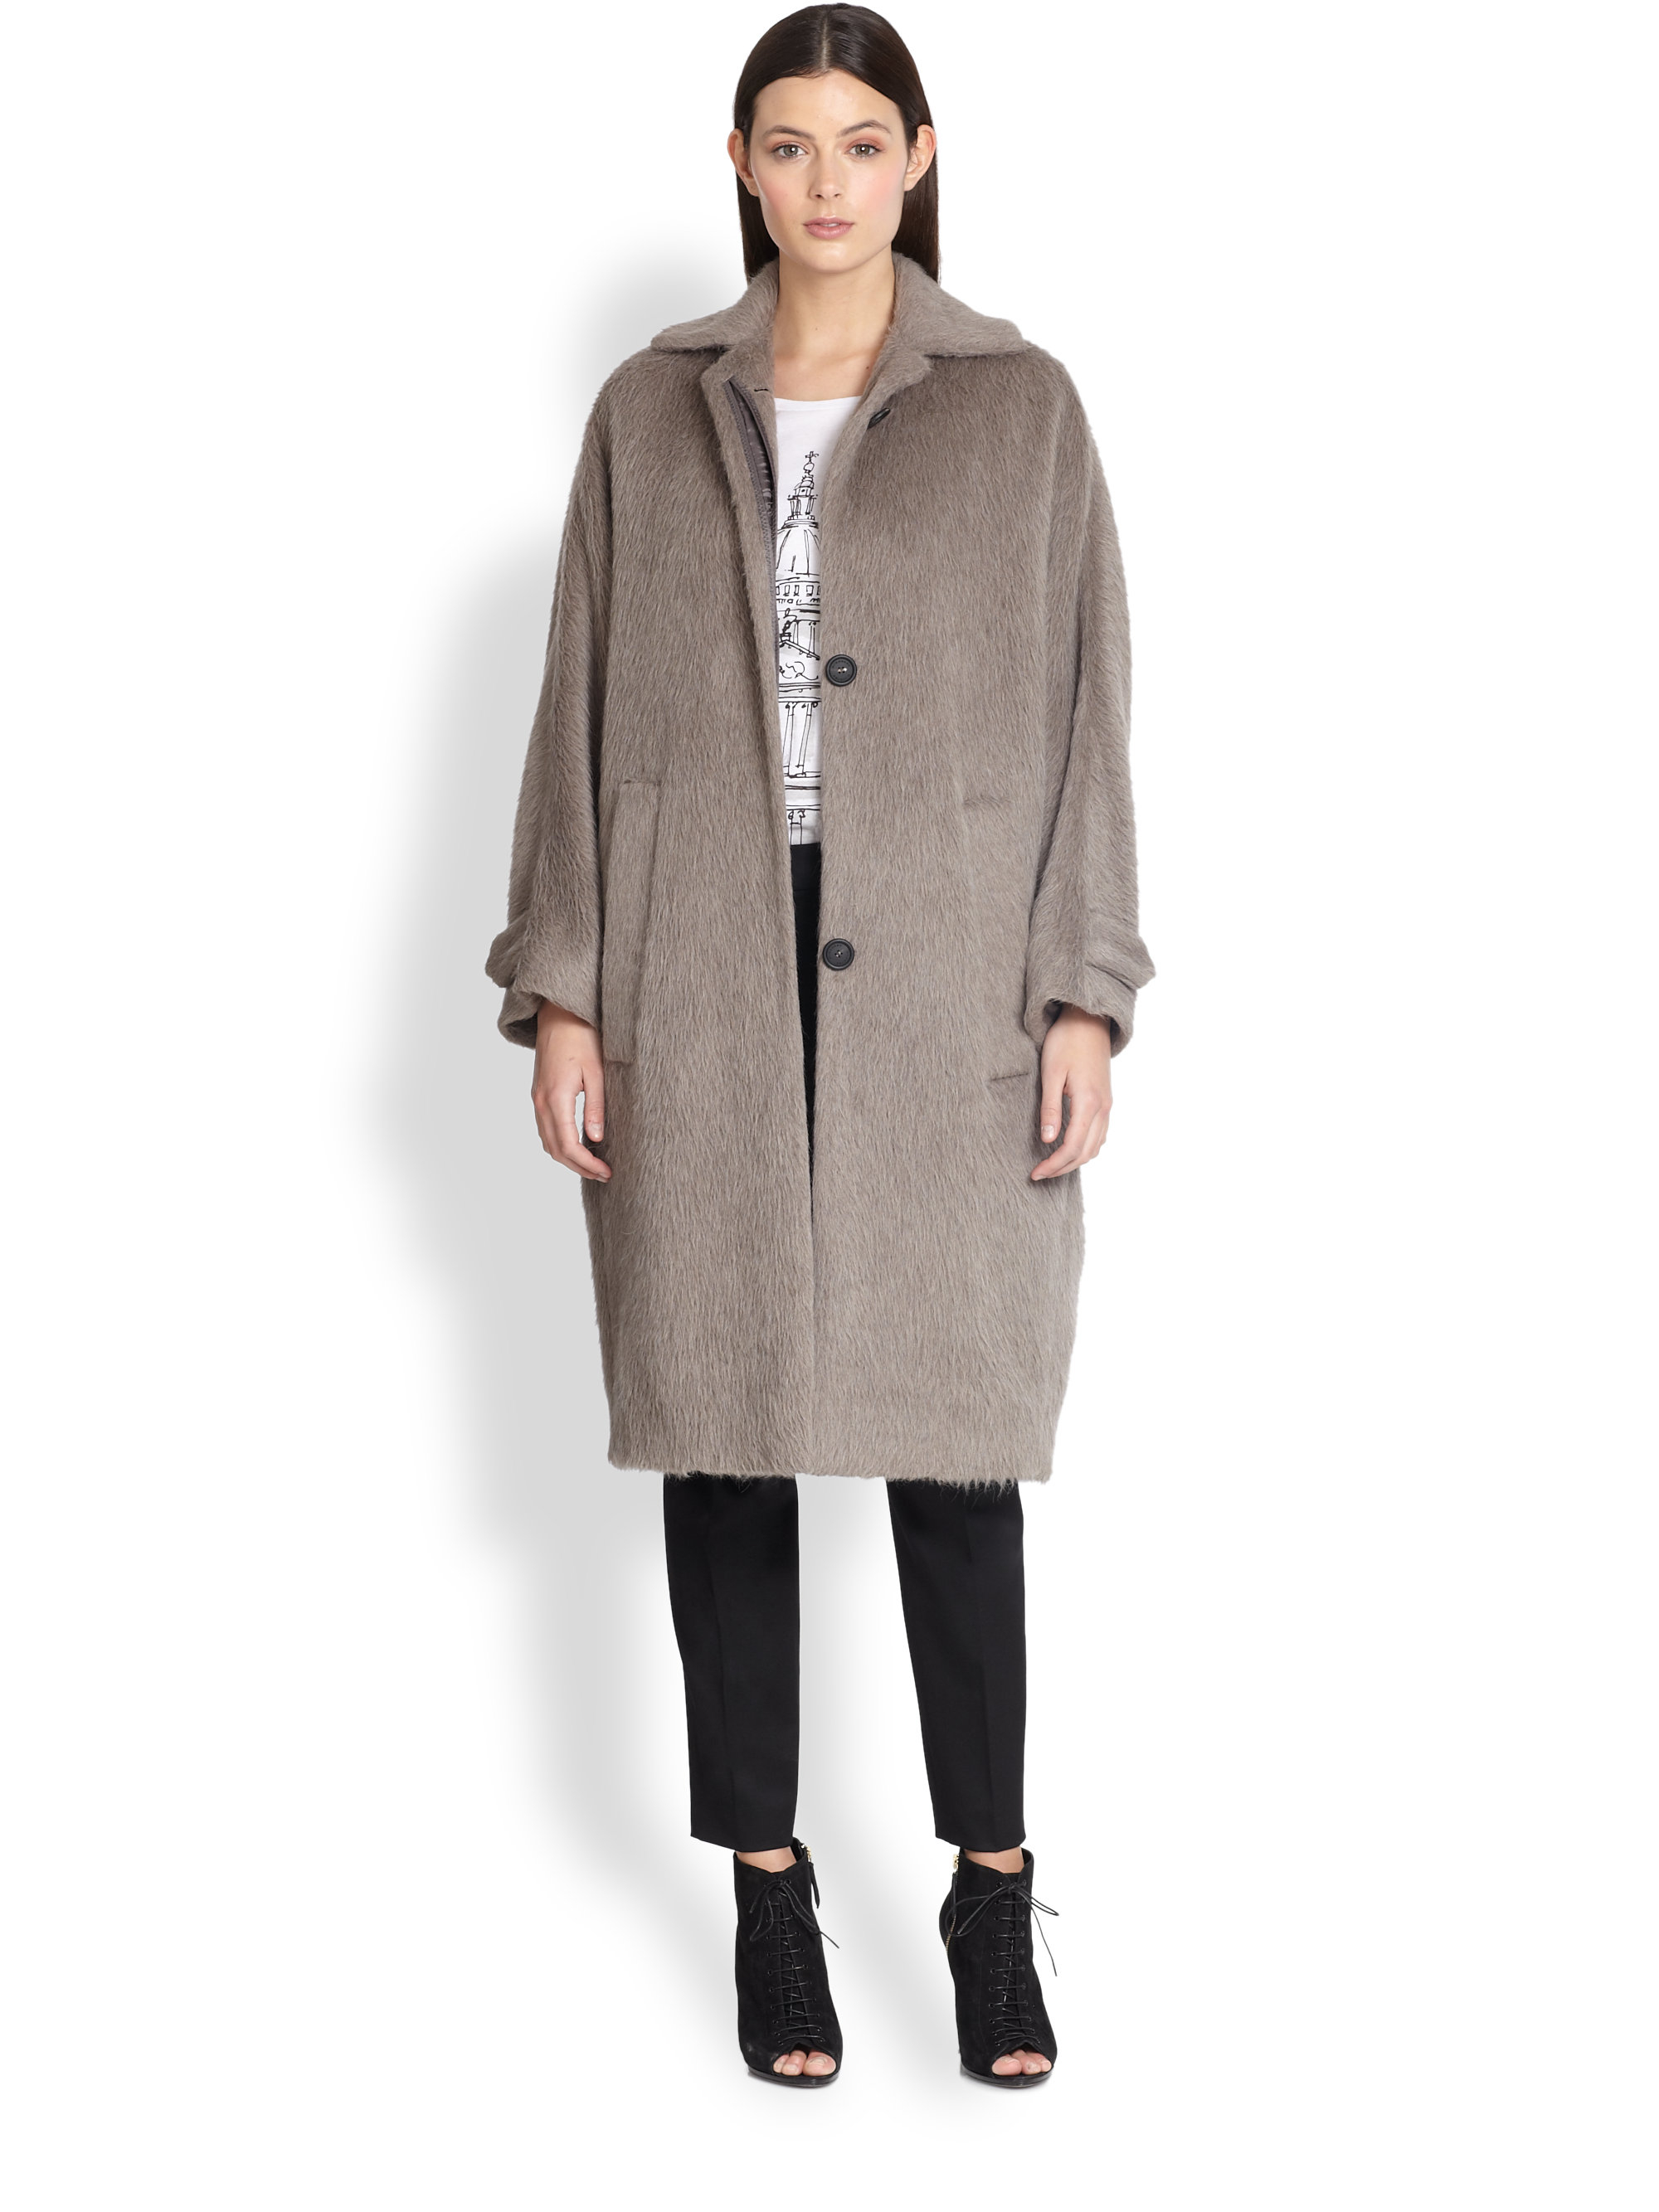 Burberry prorsum Slouchy Brushed Wool Coat in Gray | Lyst